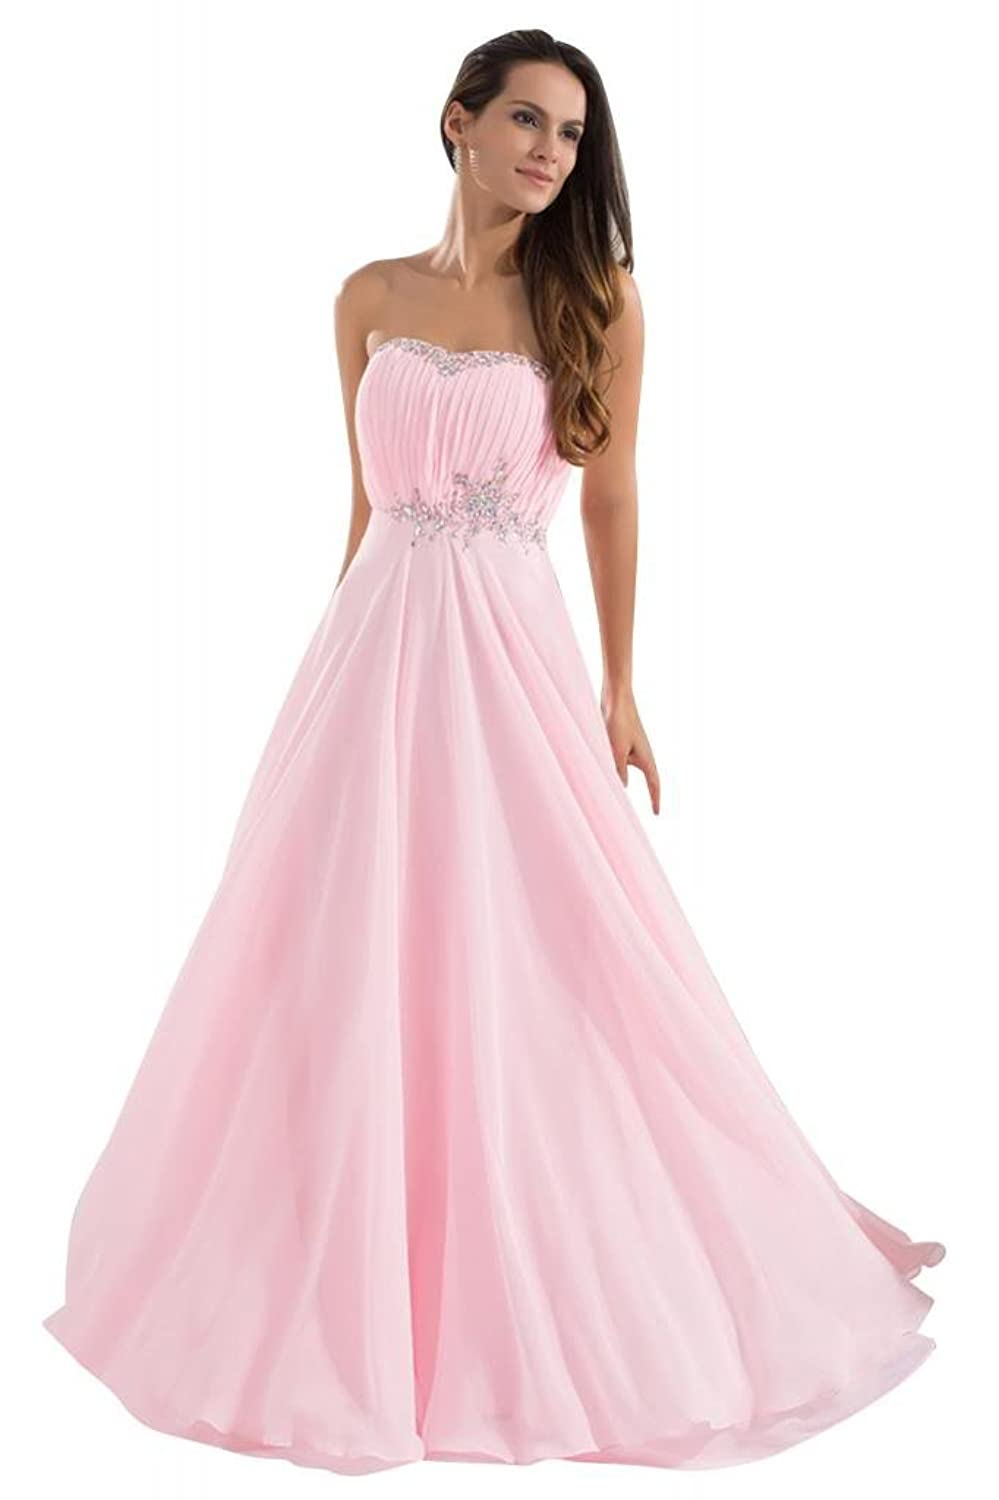 GEORGE BRIDE Pink Honey Pretty Strapless Chiffon Long Prom Dress